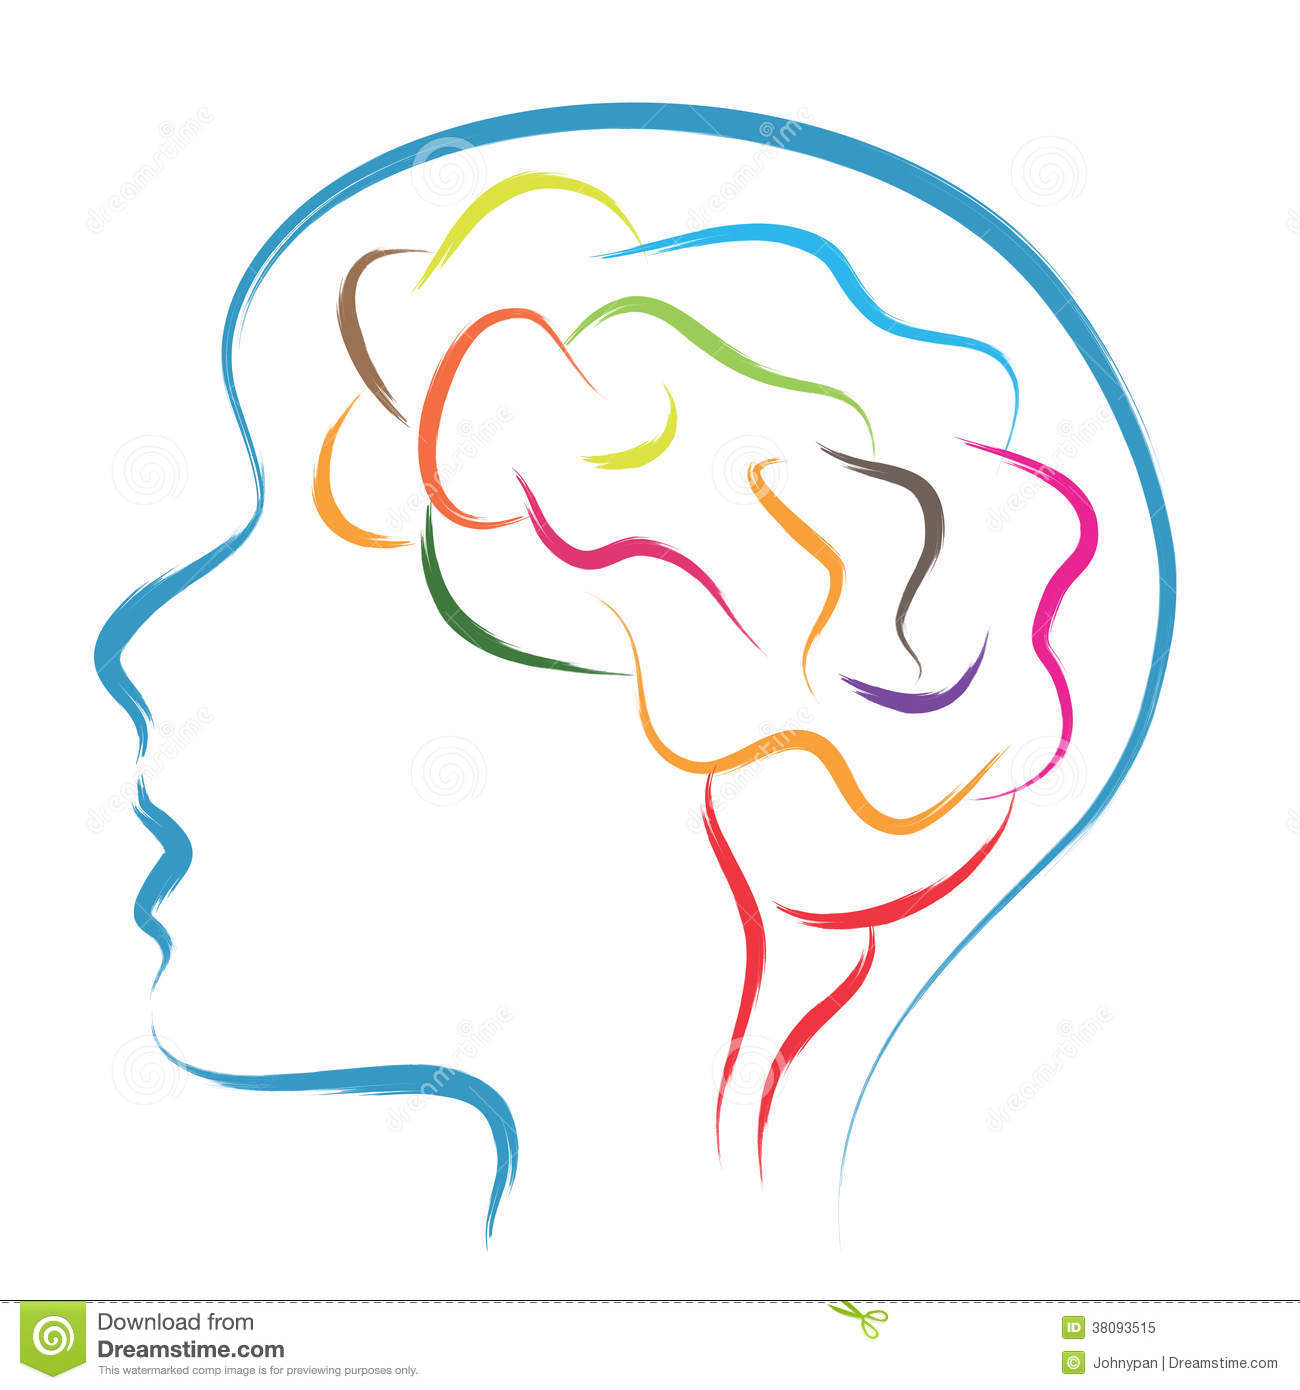 head and brain royalty free stock photo image 38093515 gear vector free download gear vector in dreams meaning